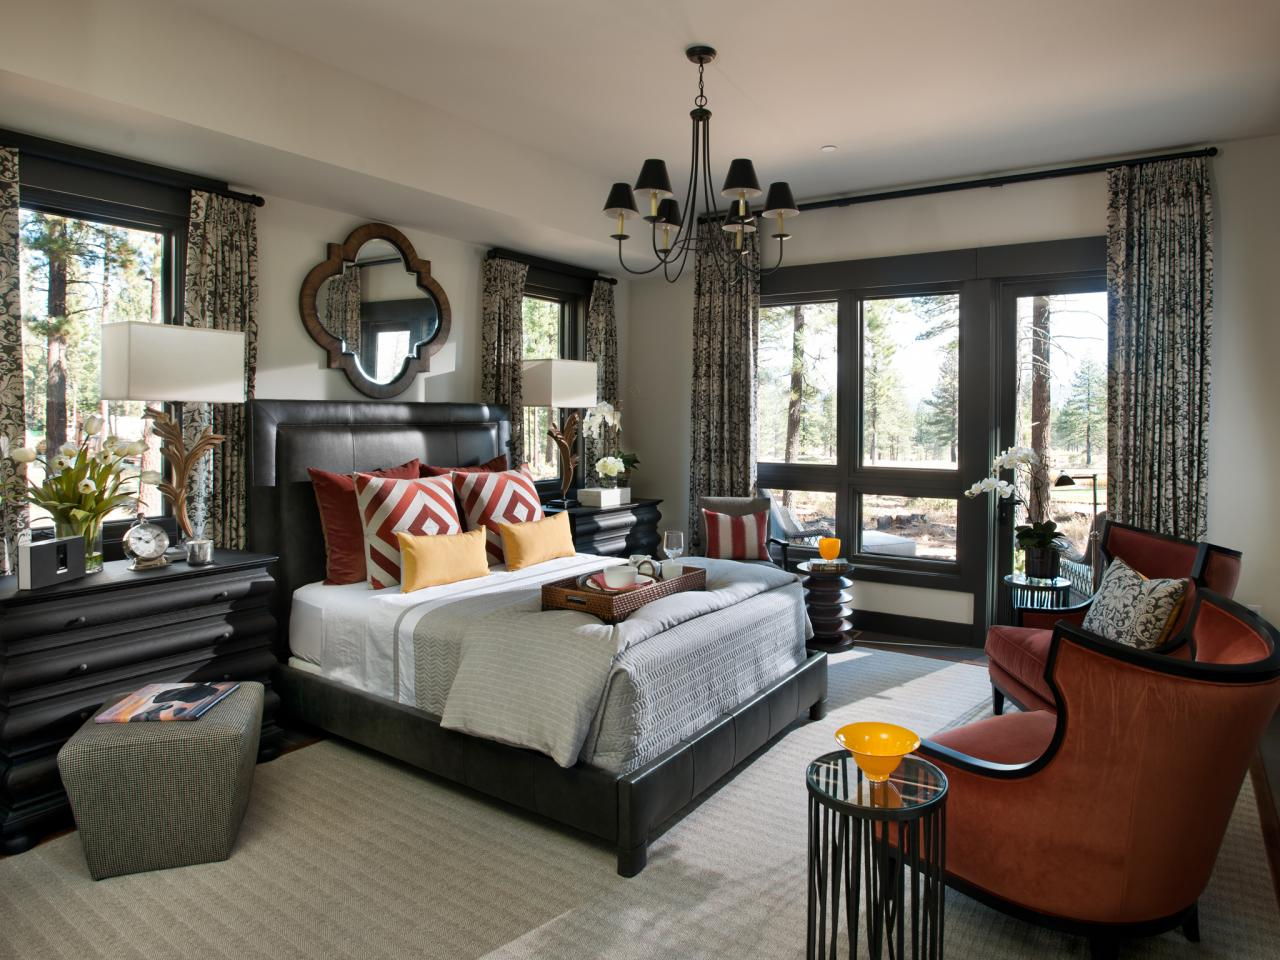 Hgtv dream home 2014 master bedroom pictures and video Dream room design